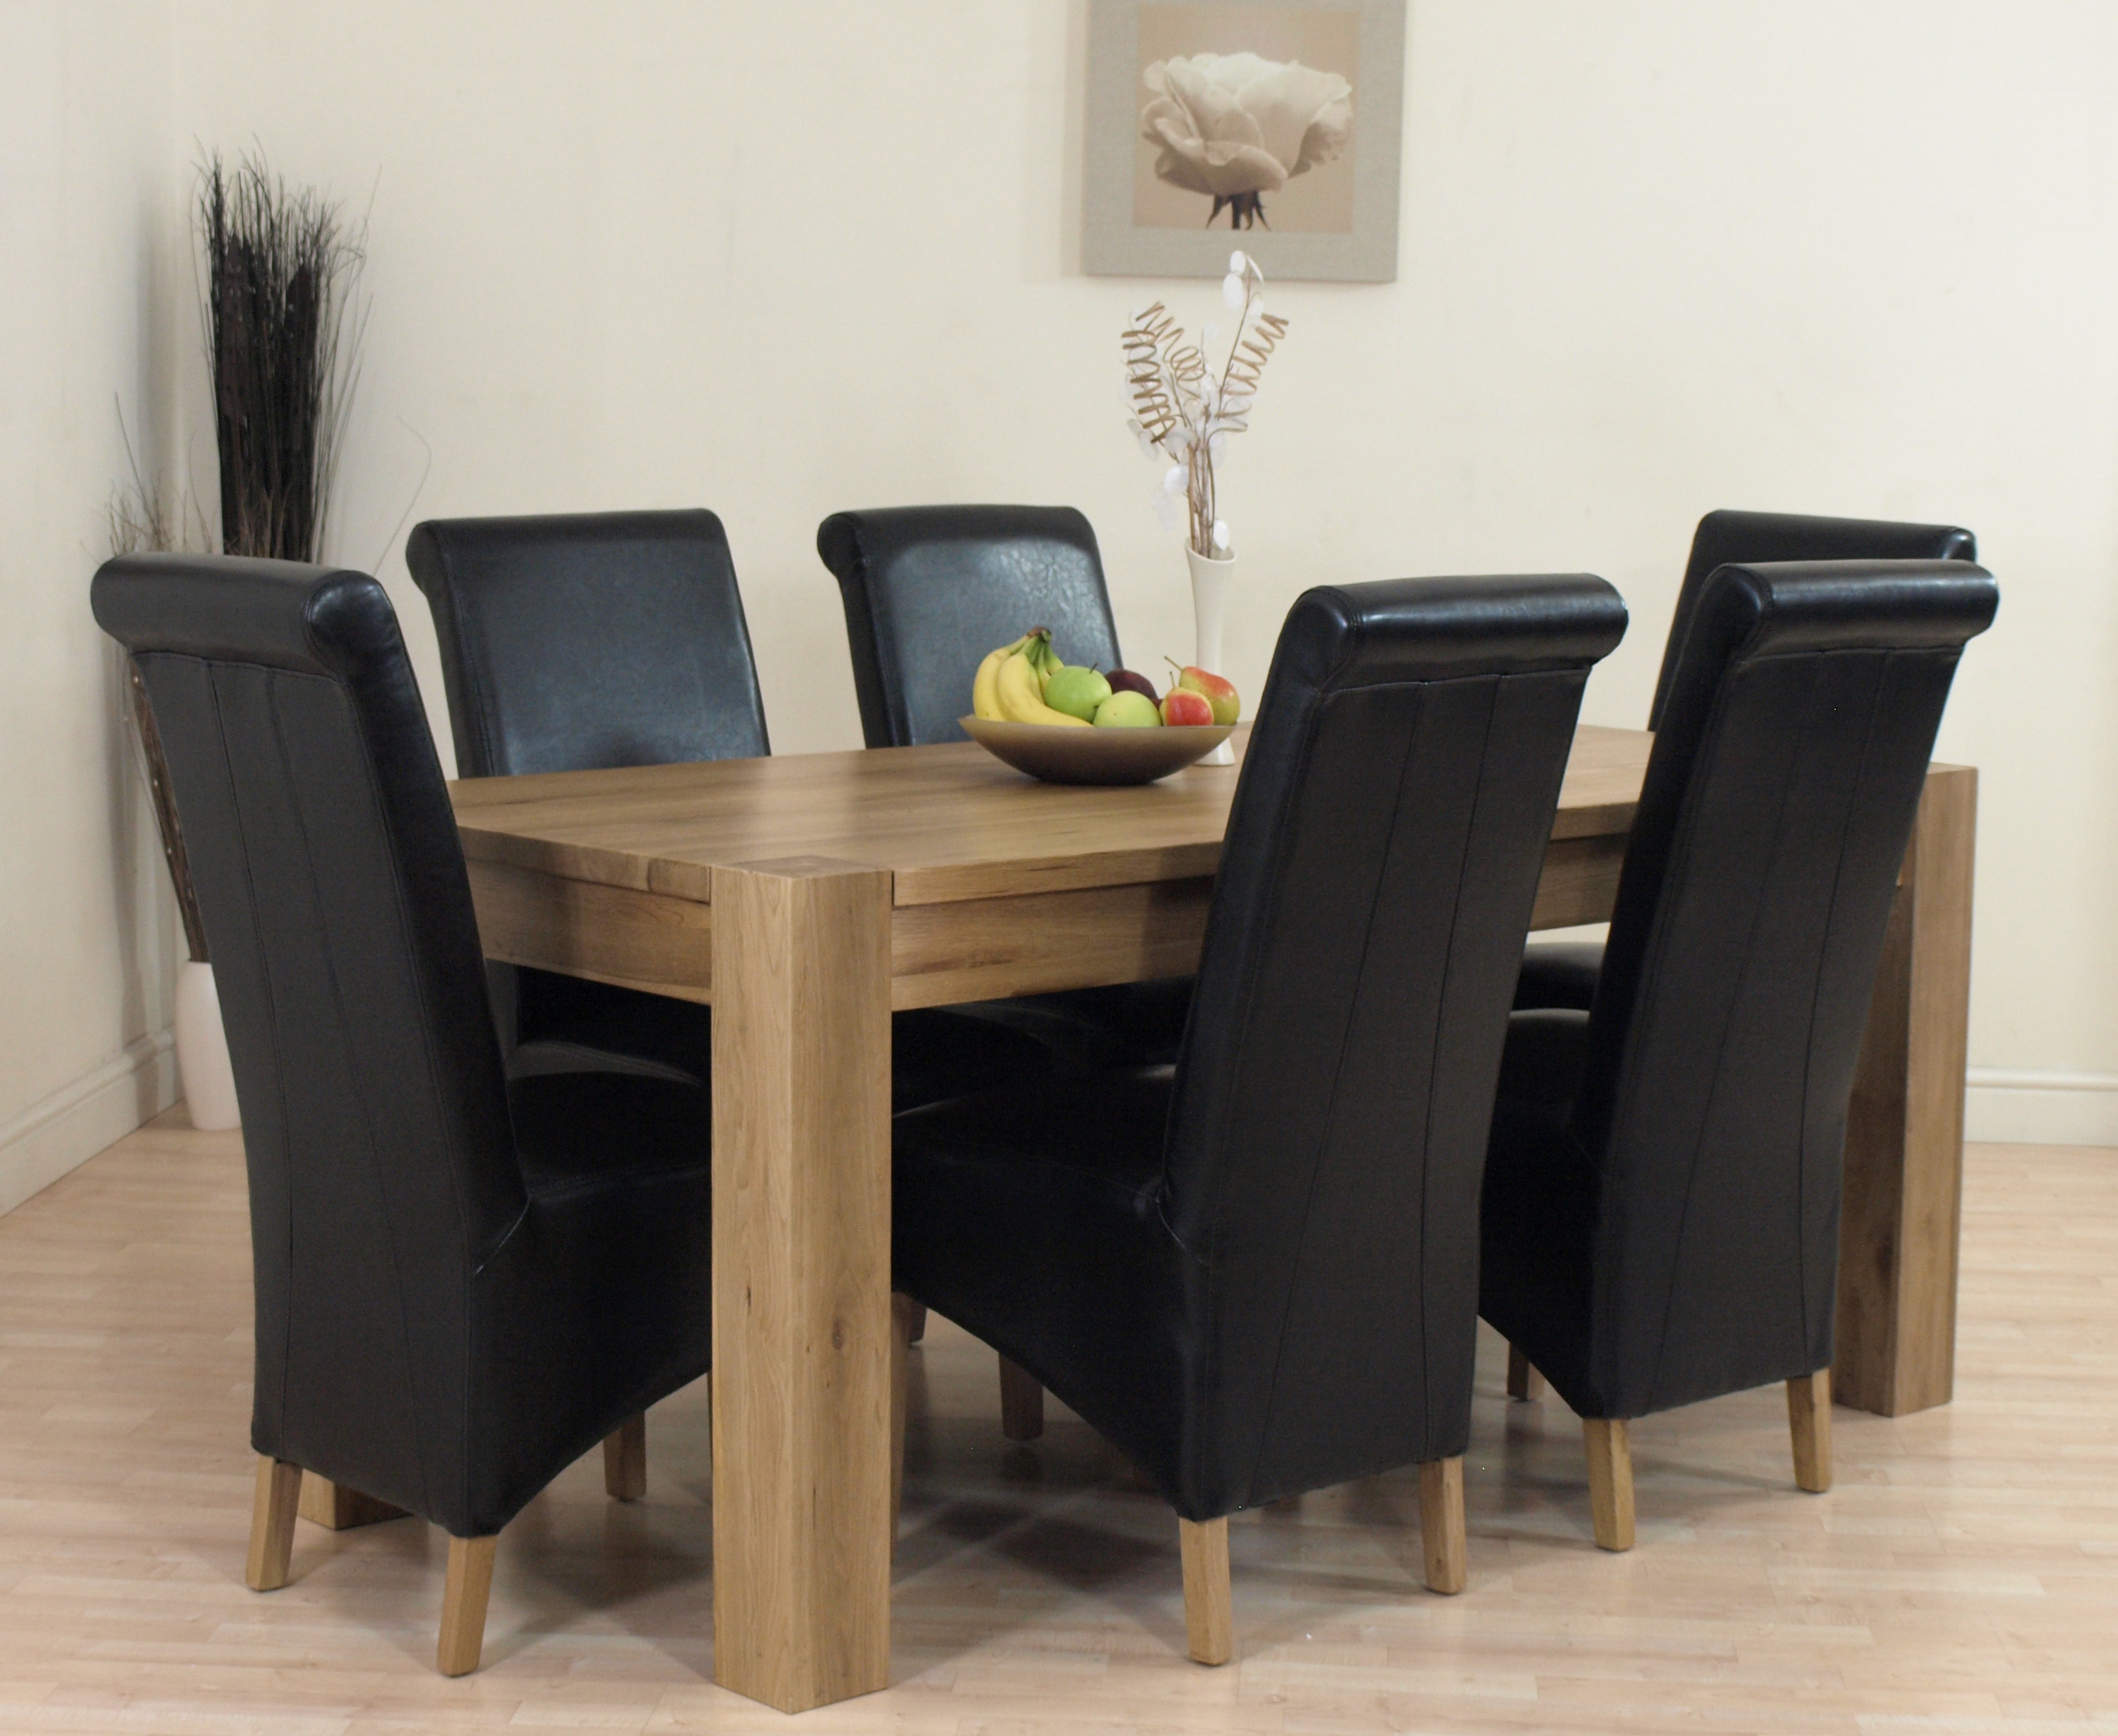 details about kuba solid oak dining table and 6 black leather chairs